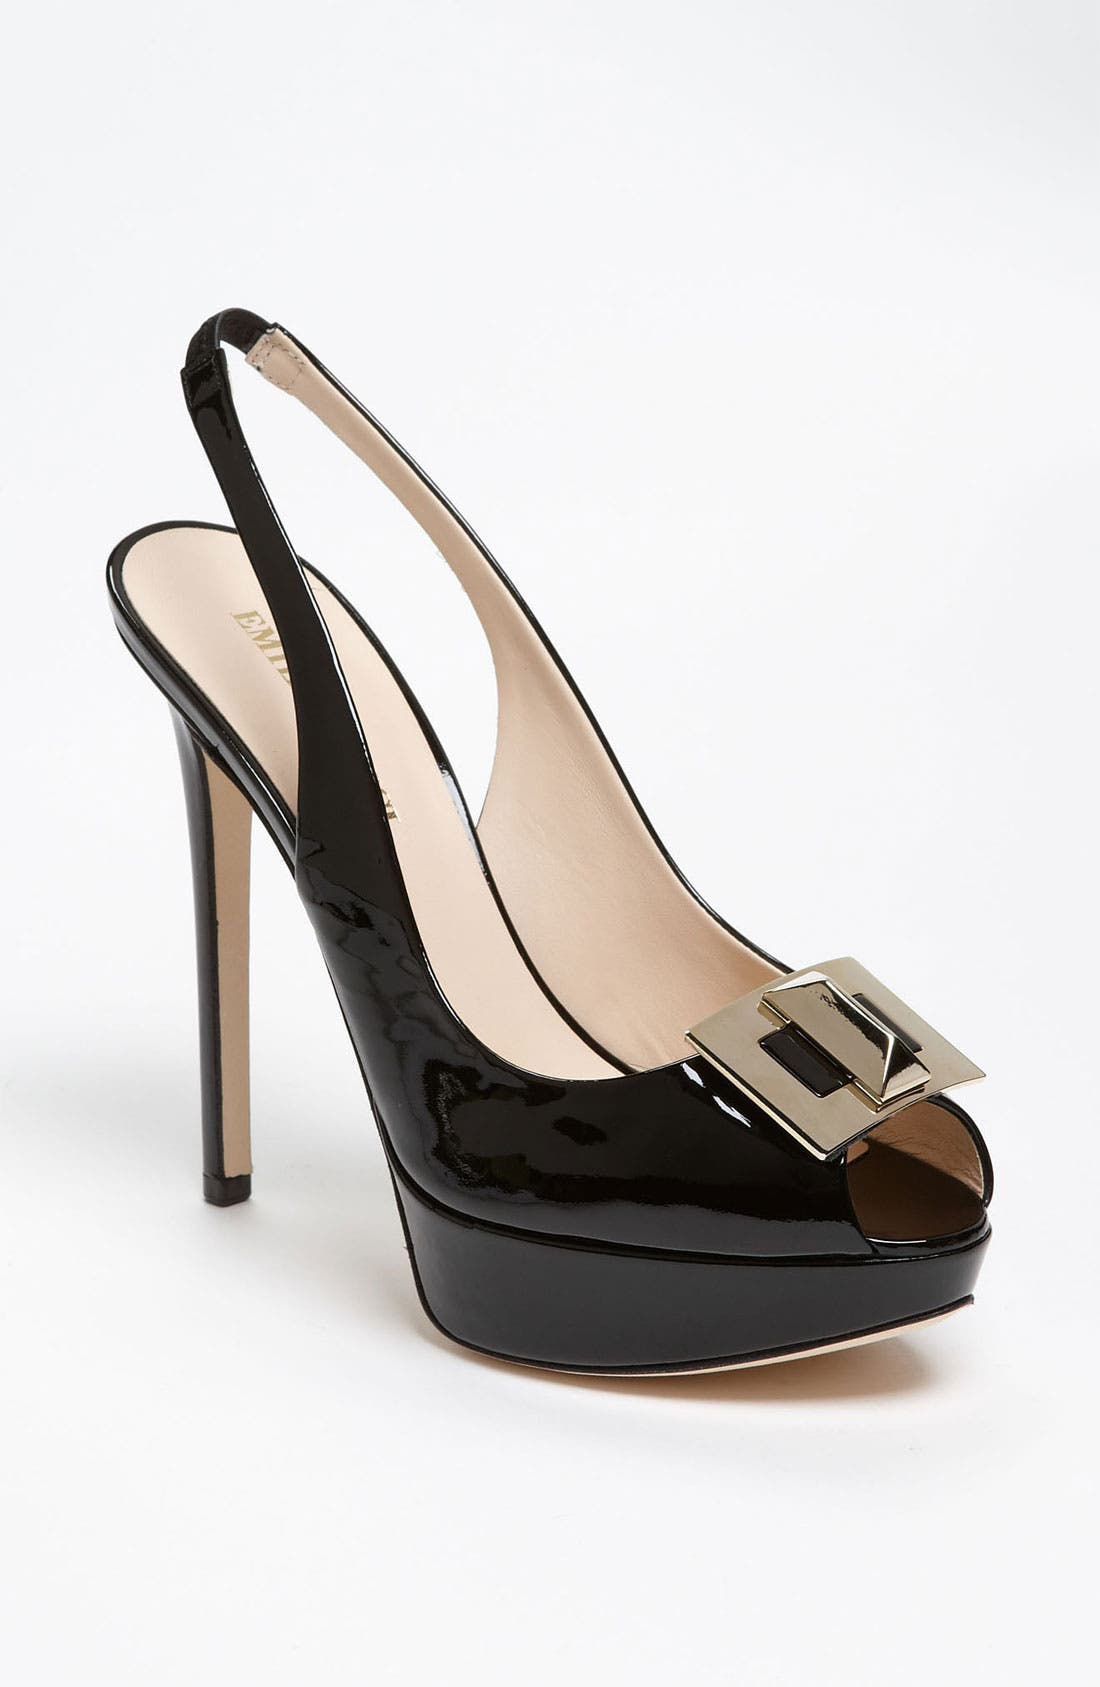 Alternate Image 1 Selected - Emilio Pucci 'Marquise' Pump